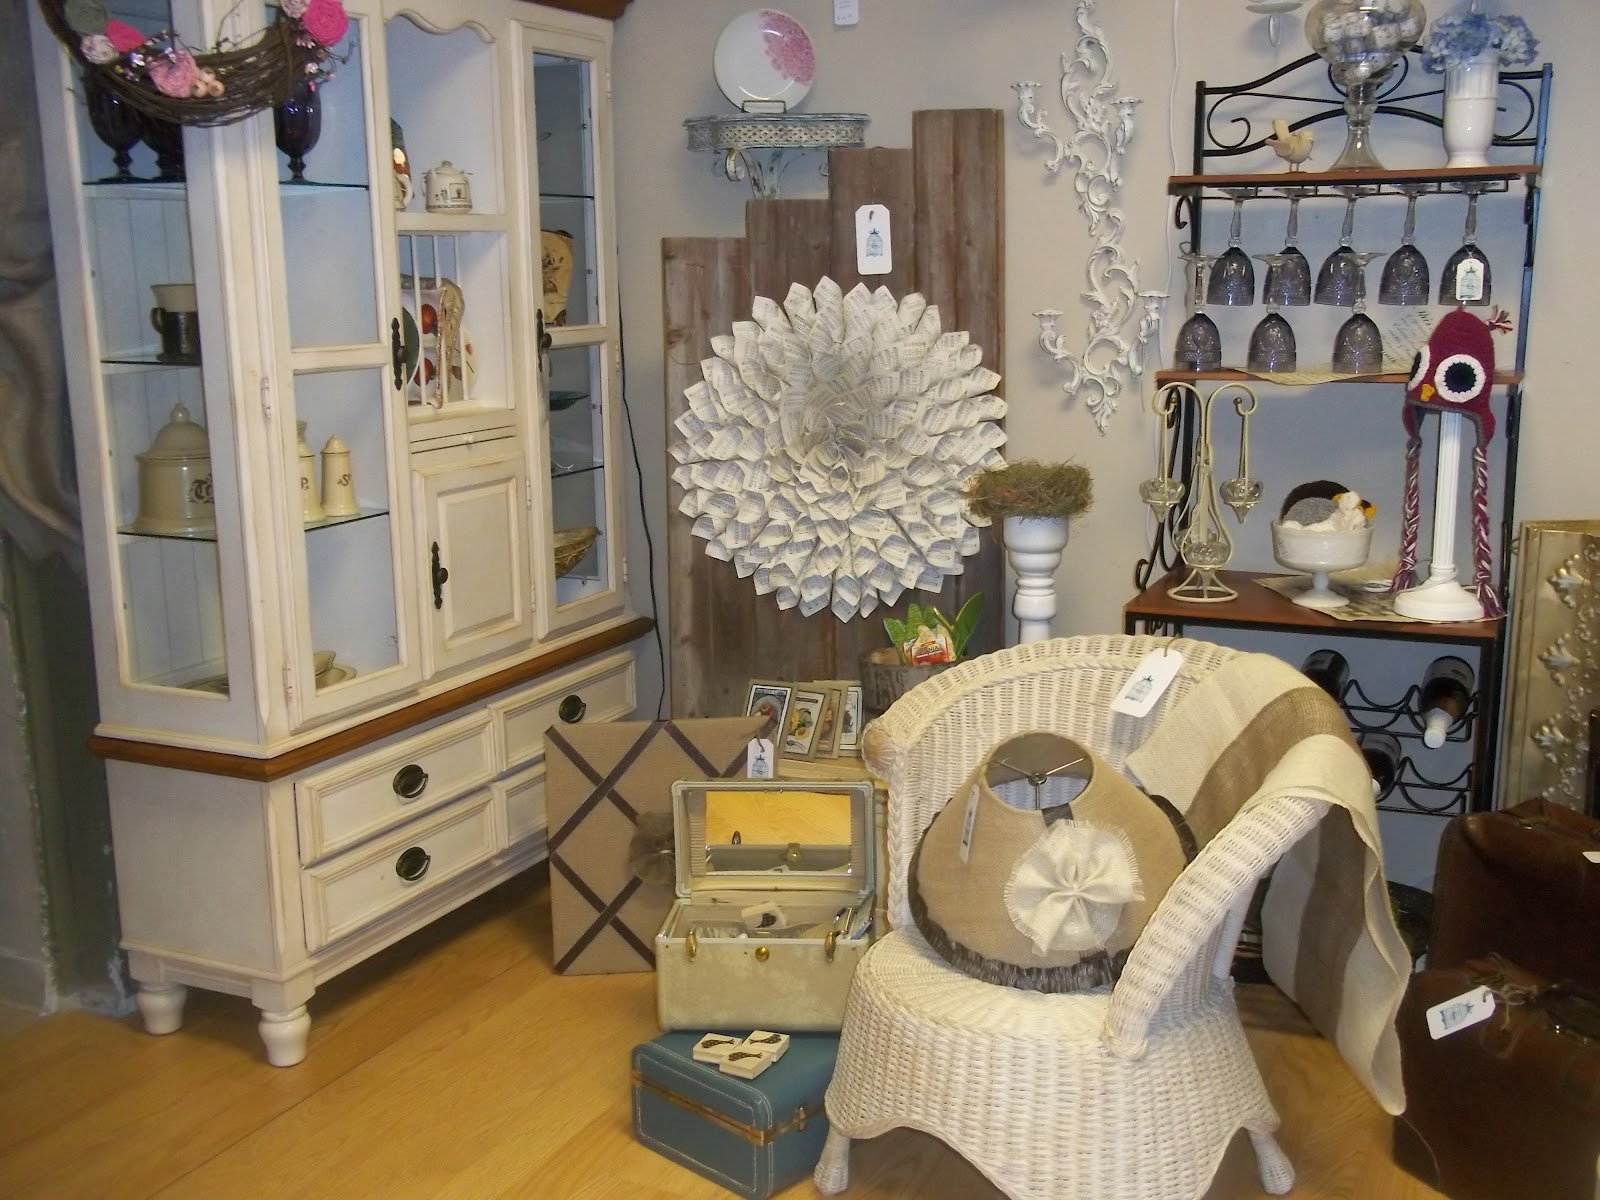 The Cutest Little Shop In The World Handmade Jewelry Cute And Quirky Home Decor From Breeze Boutique Just Adorable